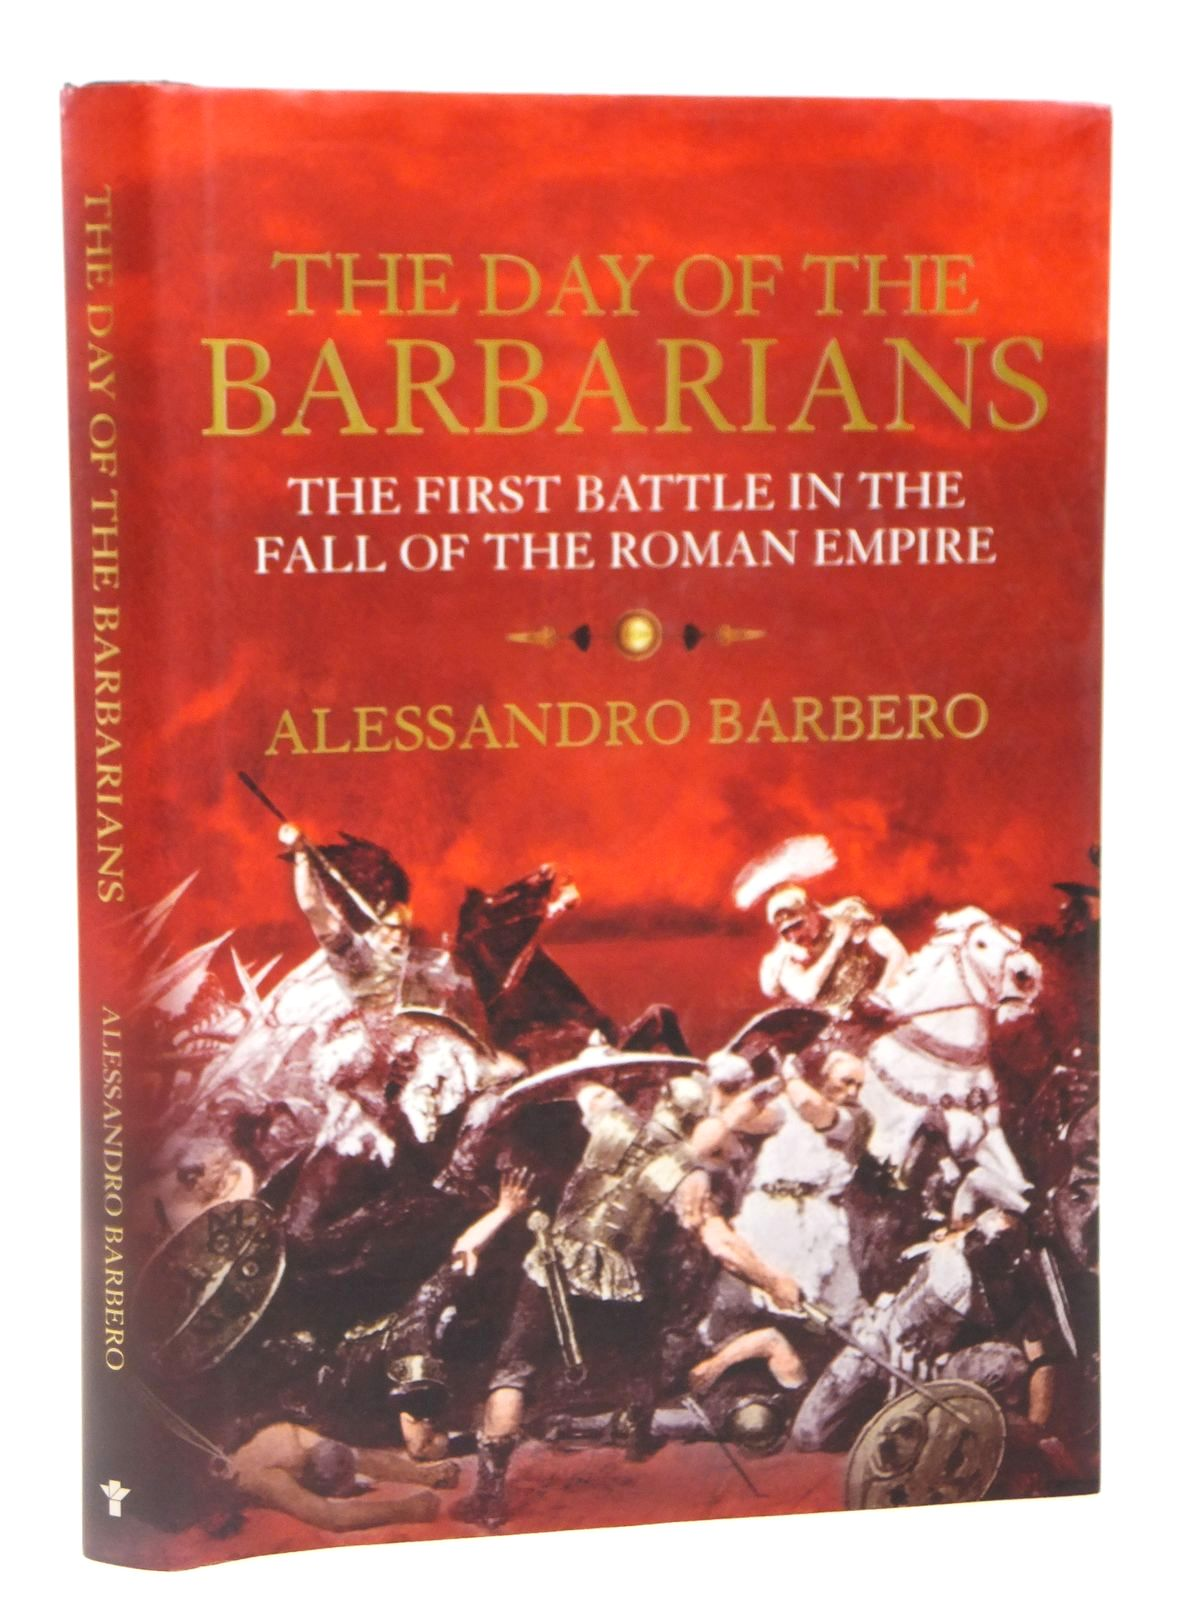 Photo of THE DAY OF THE BARBARIANS THE FIRST BATTLE IN THE FALL OF THE ROMAN EMPIRE written by Barbero, Alessandro published by Atlantic Books (STOCK CODE: 2122030)  for sale by Stella & Rose's Books